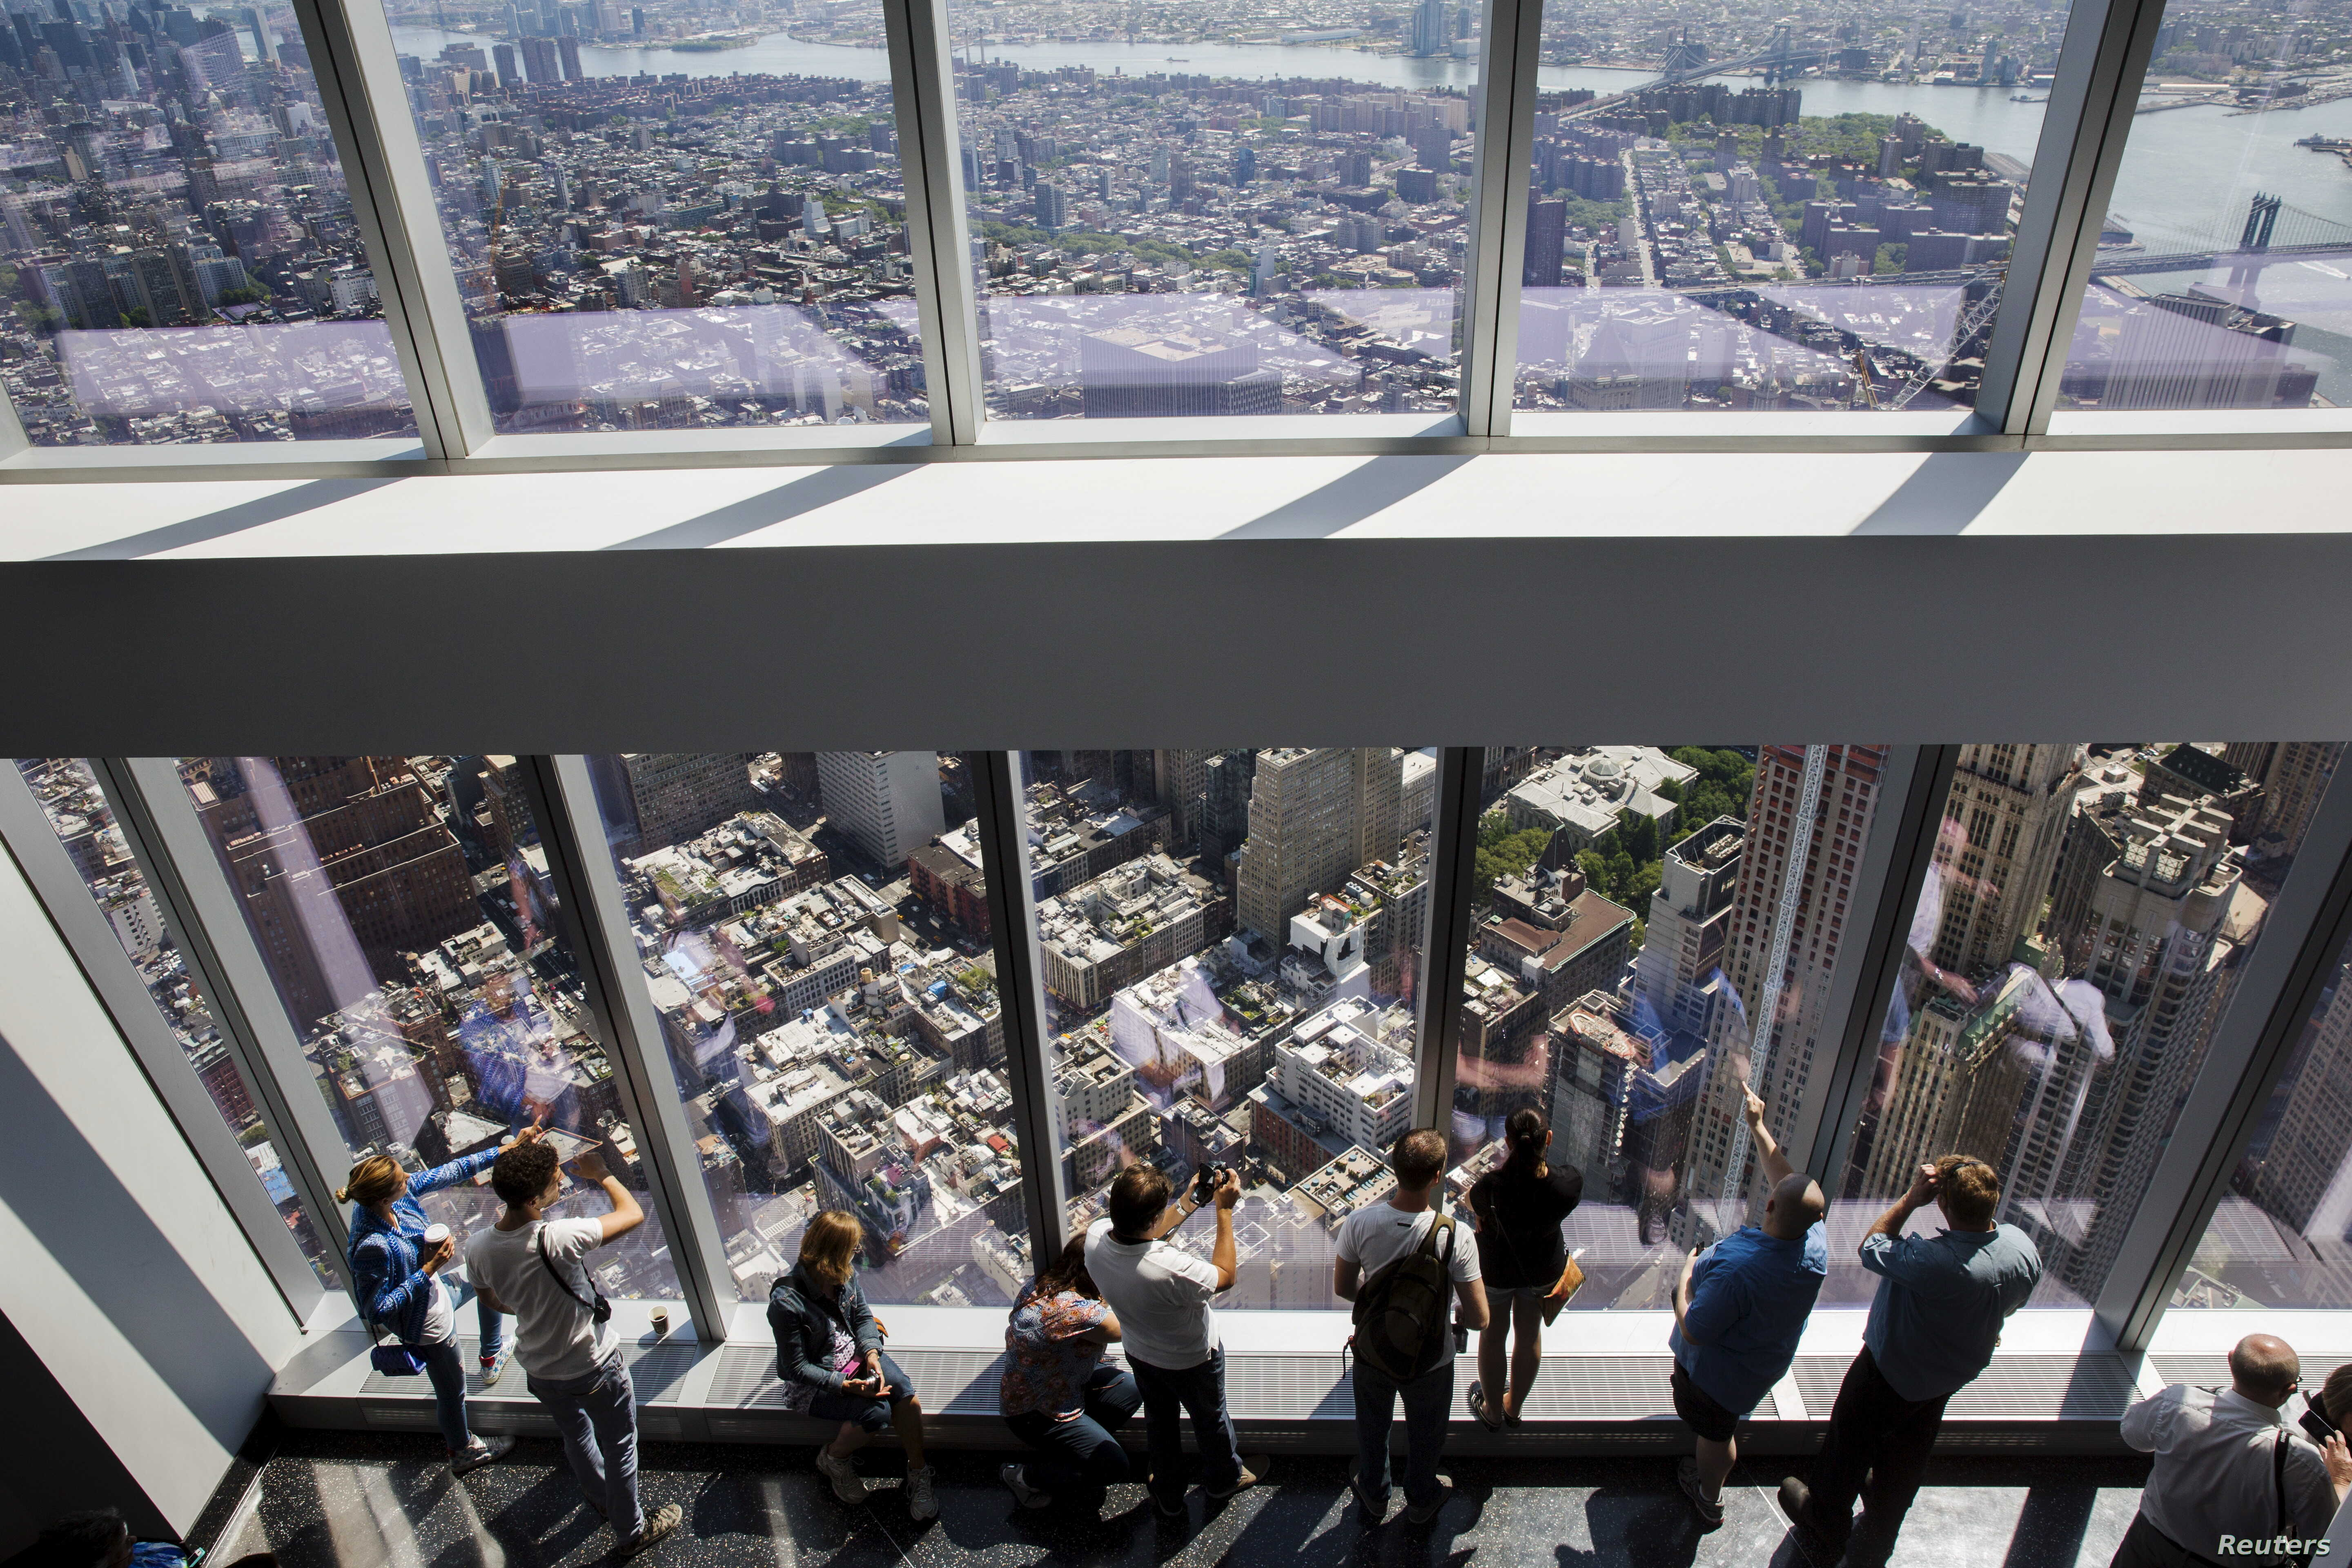 Visitors to the newly opened One World Observatory in New York, May 29, 2015.